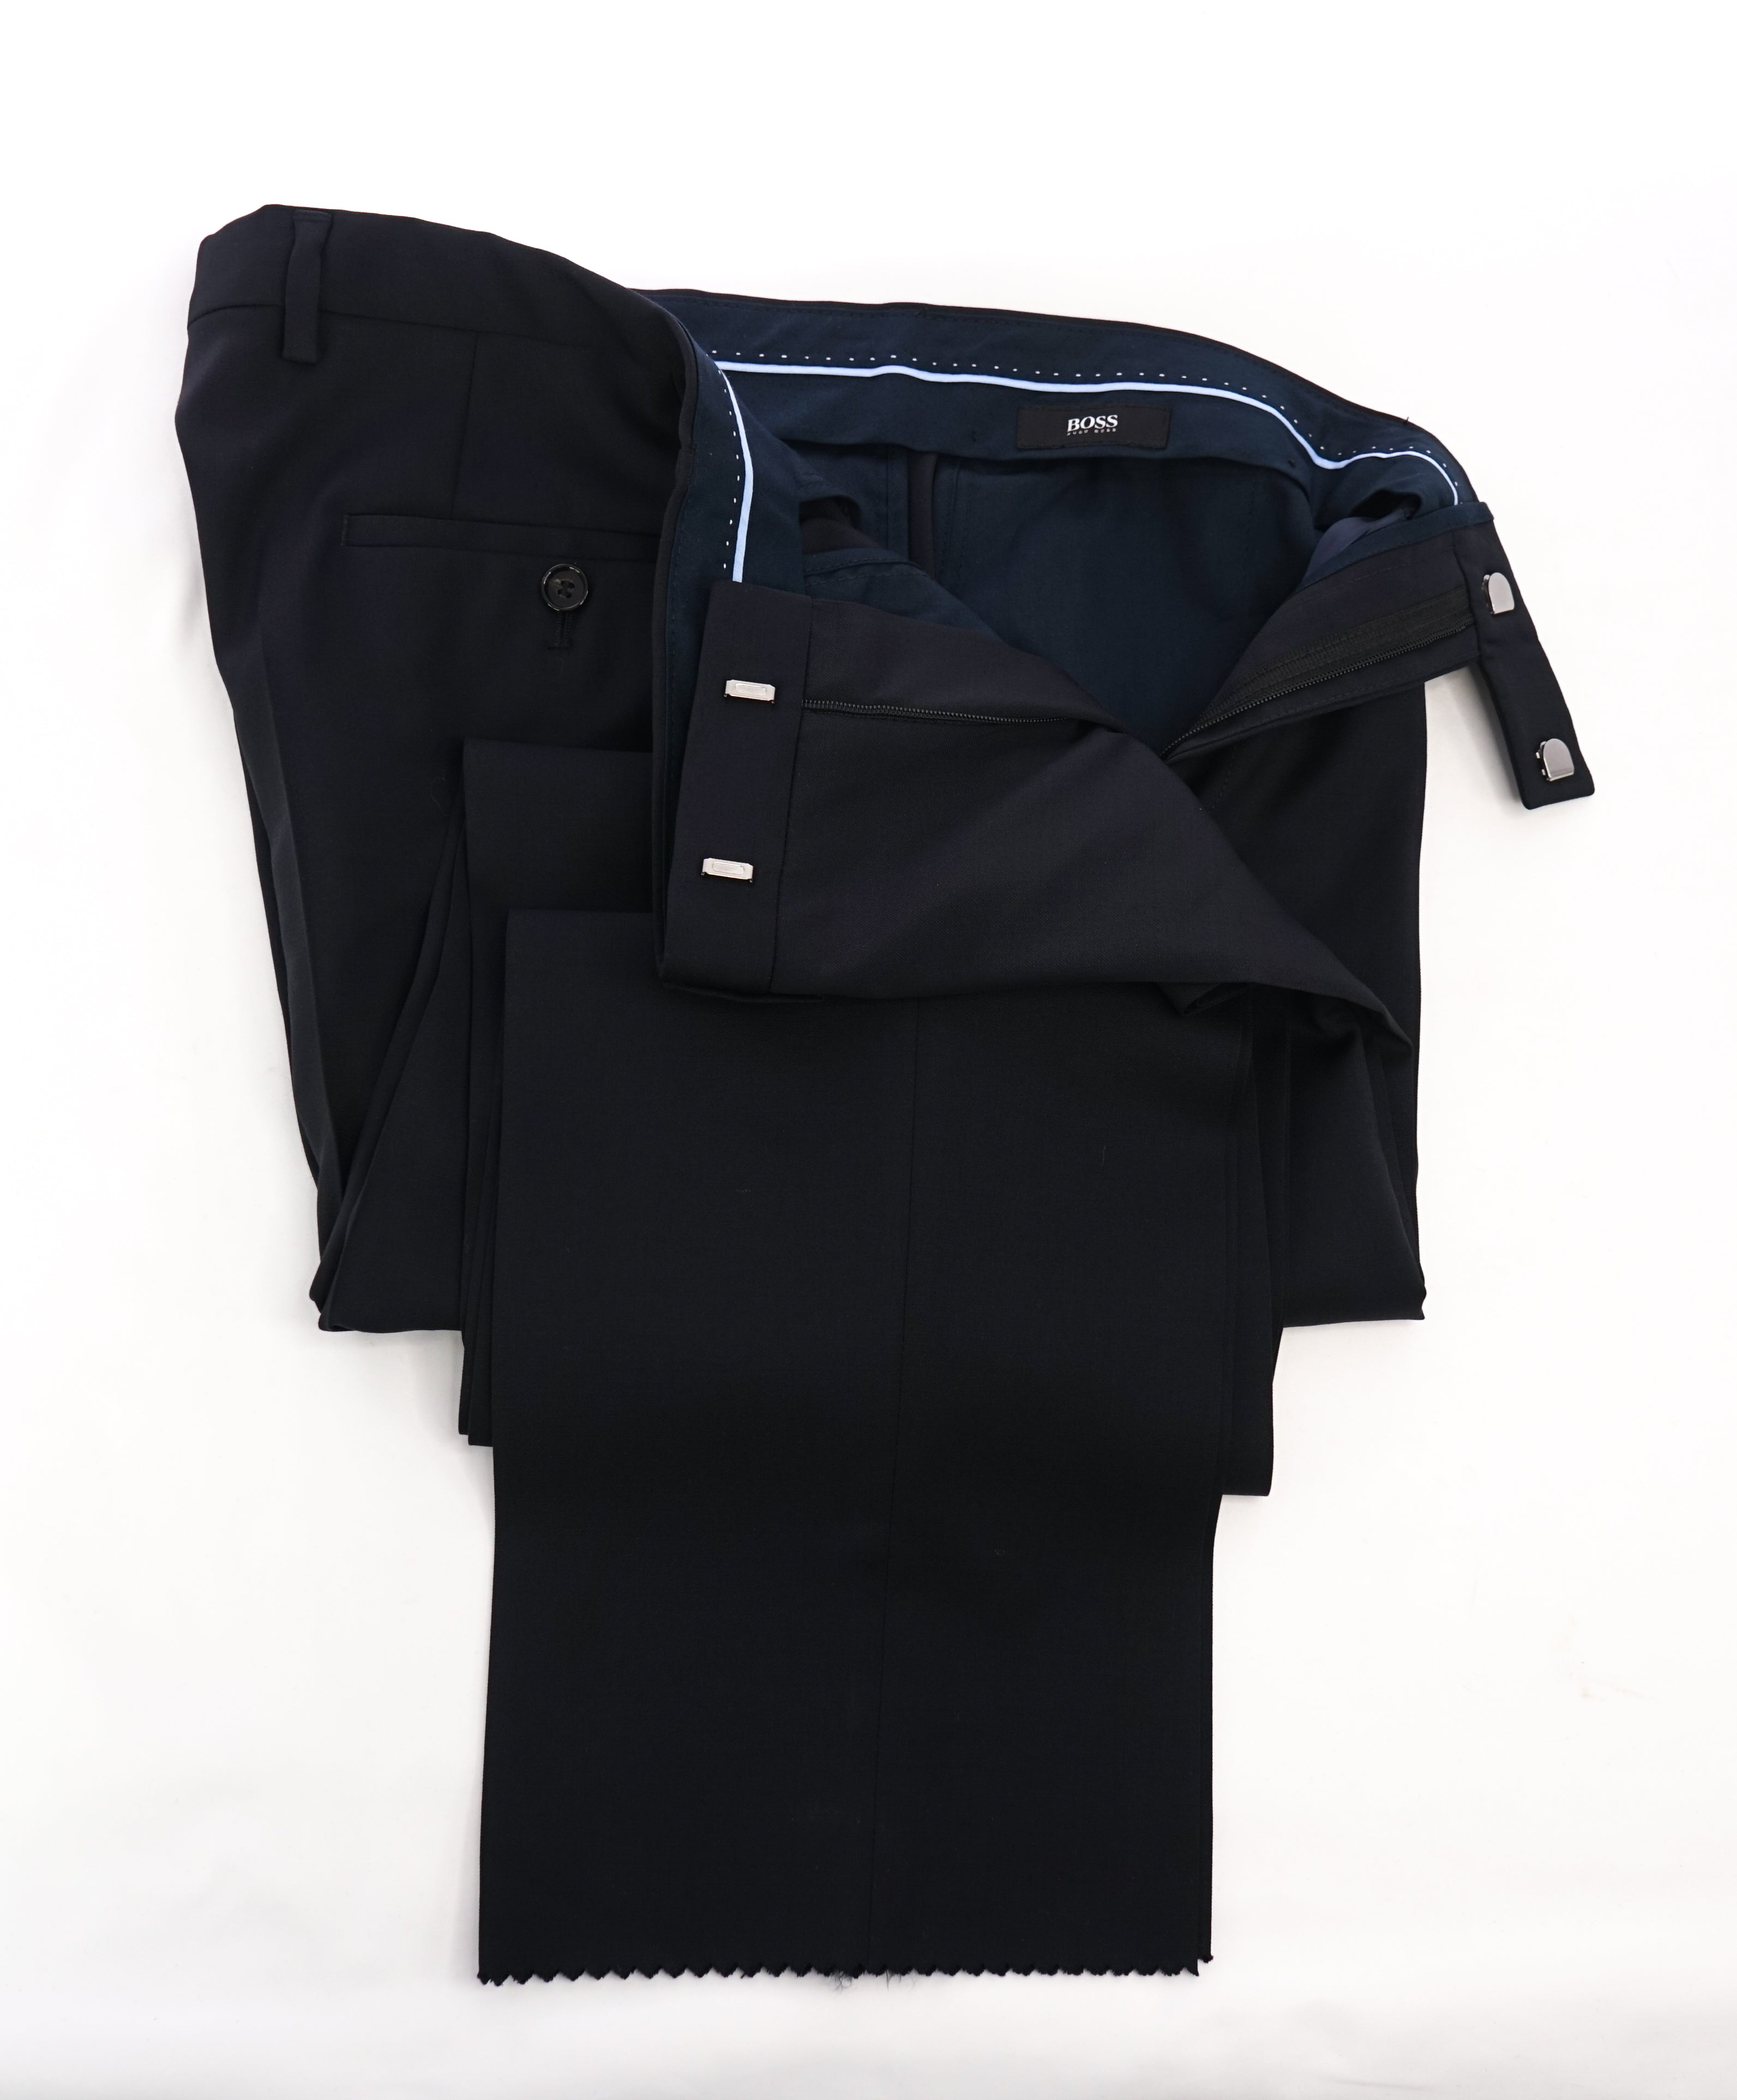 "HUGO BOSS - Navy Solid ""Sharp1 US"" Flat Front Dress Pants - 35W"